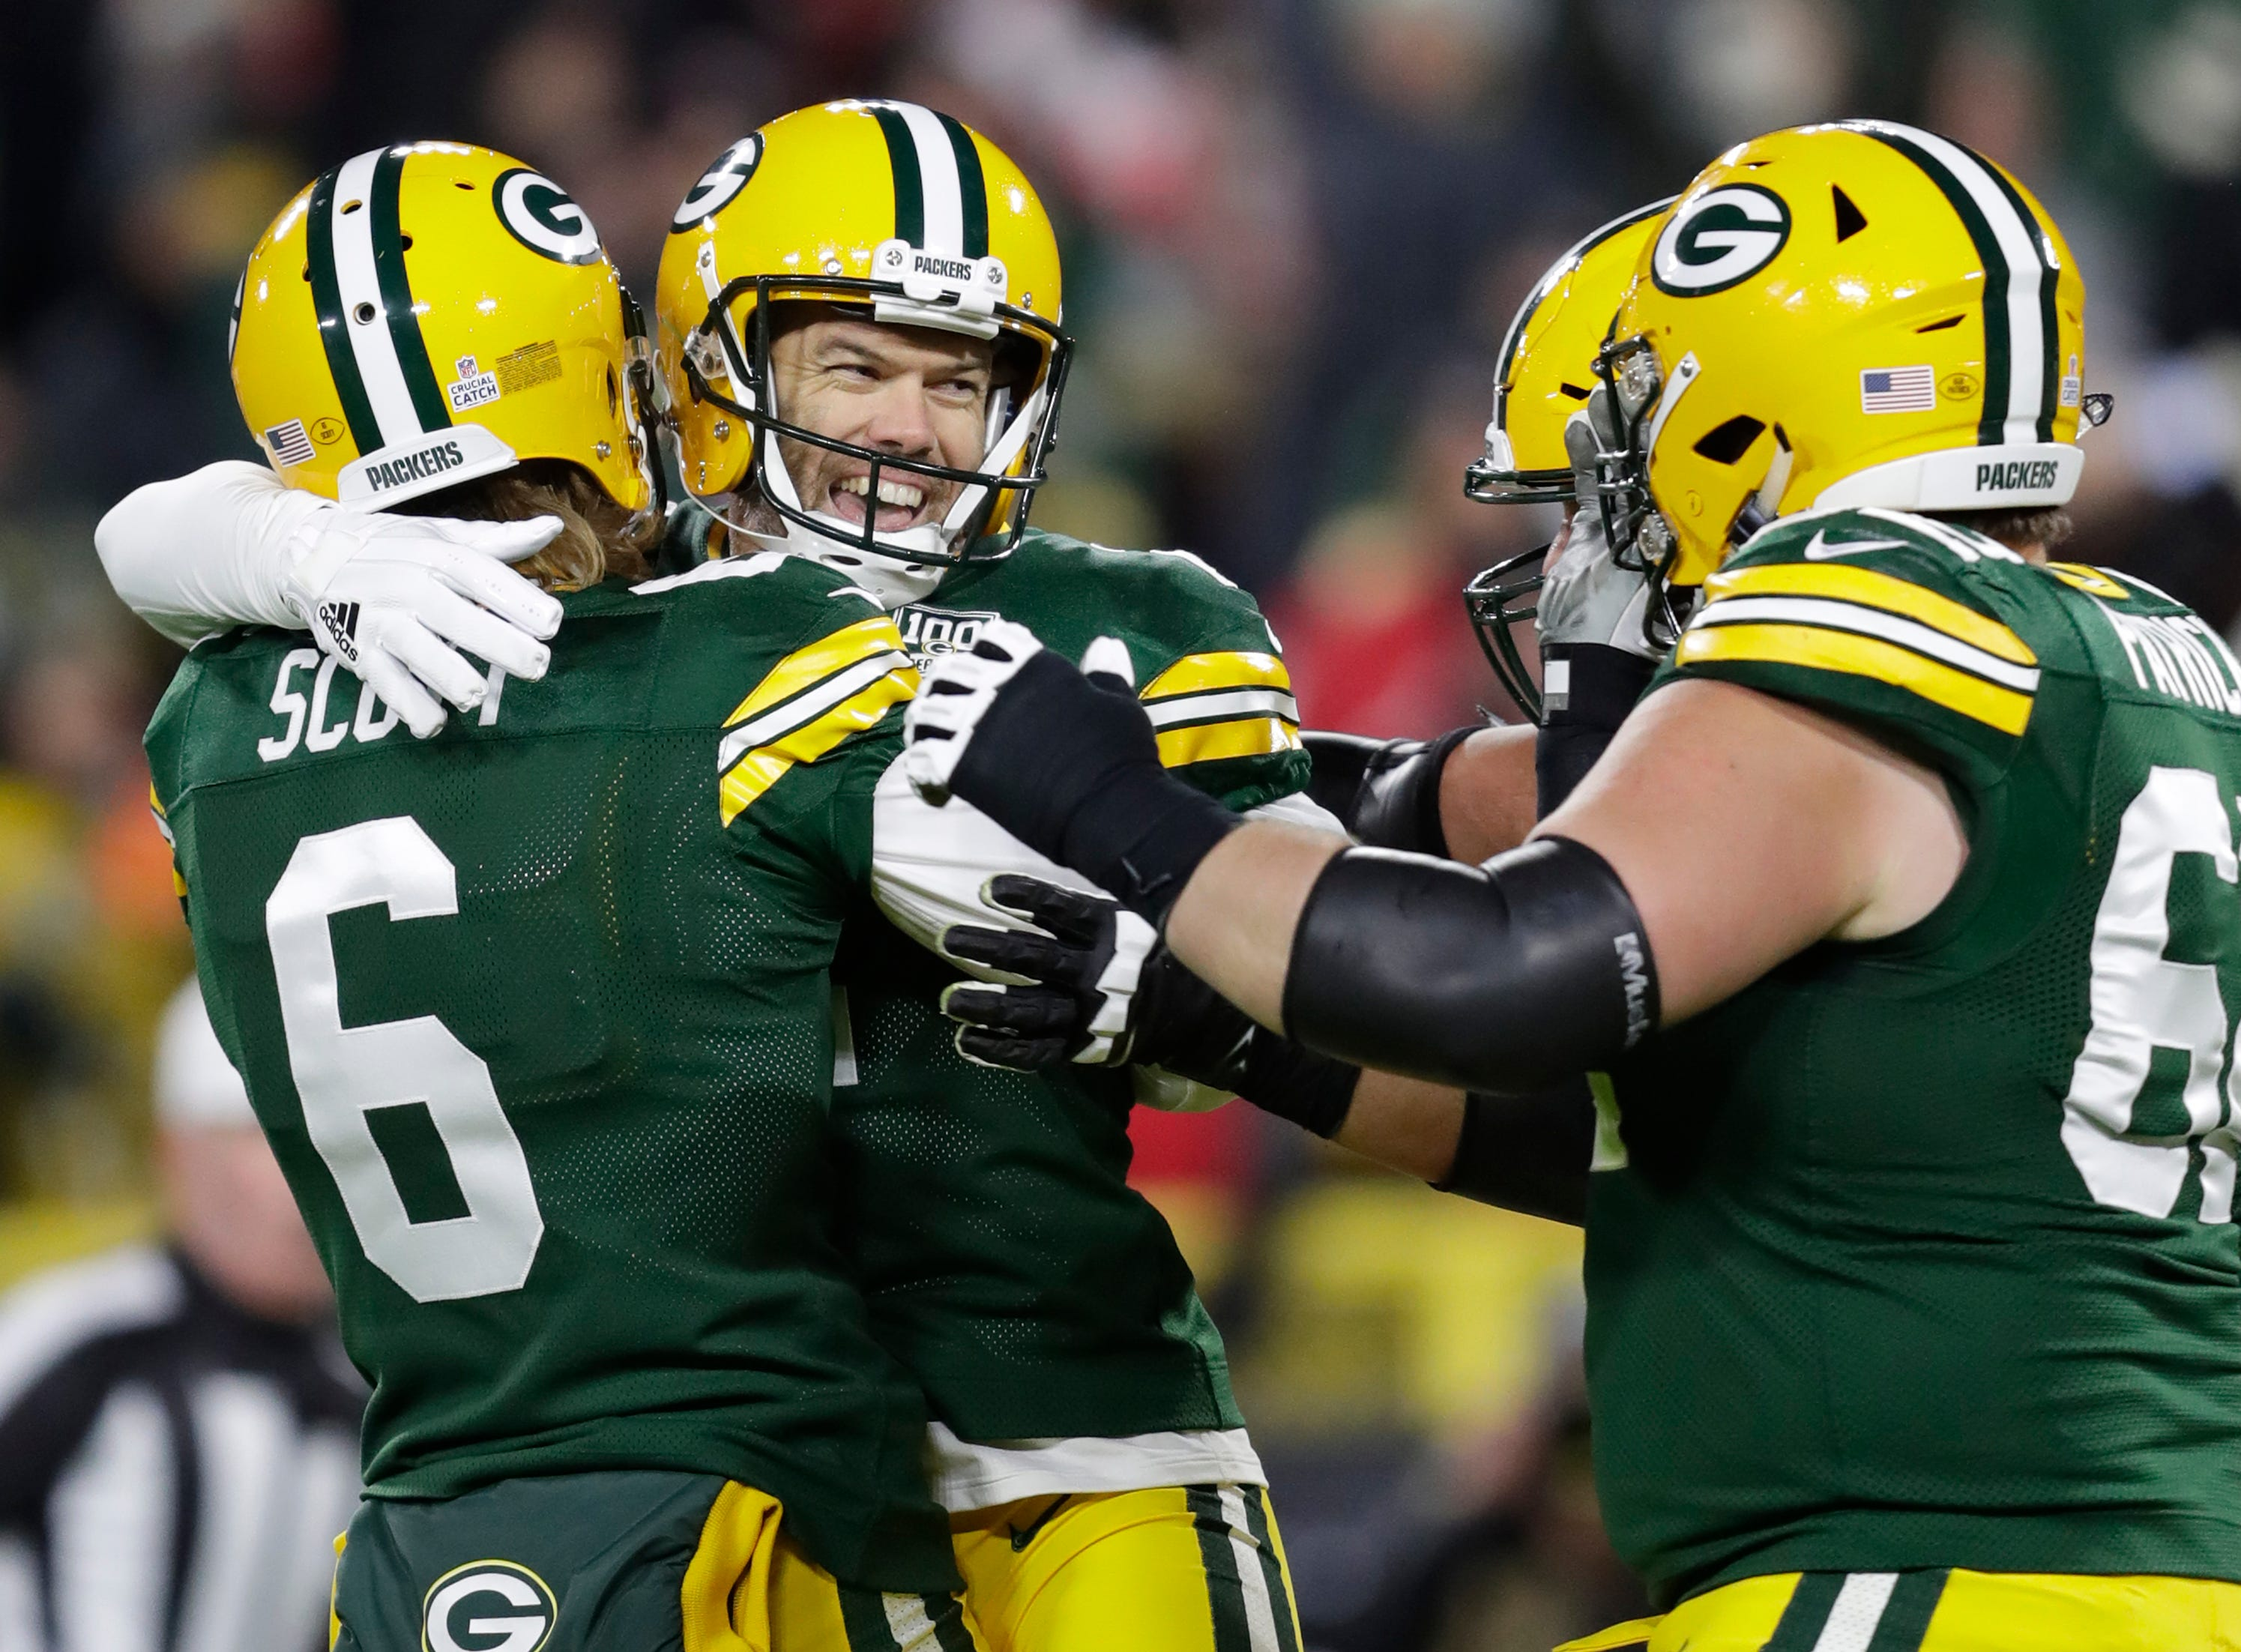 Green Bay Packers kicker Mason Crosby (2) is mobbed by teammates after kicking the game-winning fieldgoal against the San Francisco 49ers during their football game Monday, Oct. 15, 2018, at Lambeau Field in Green Bay, Wis. 